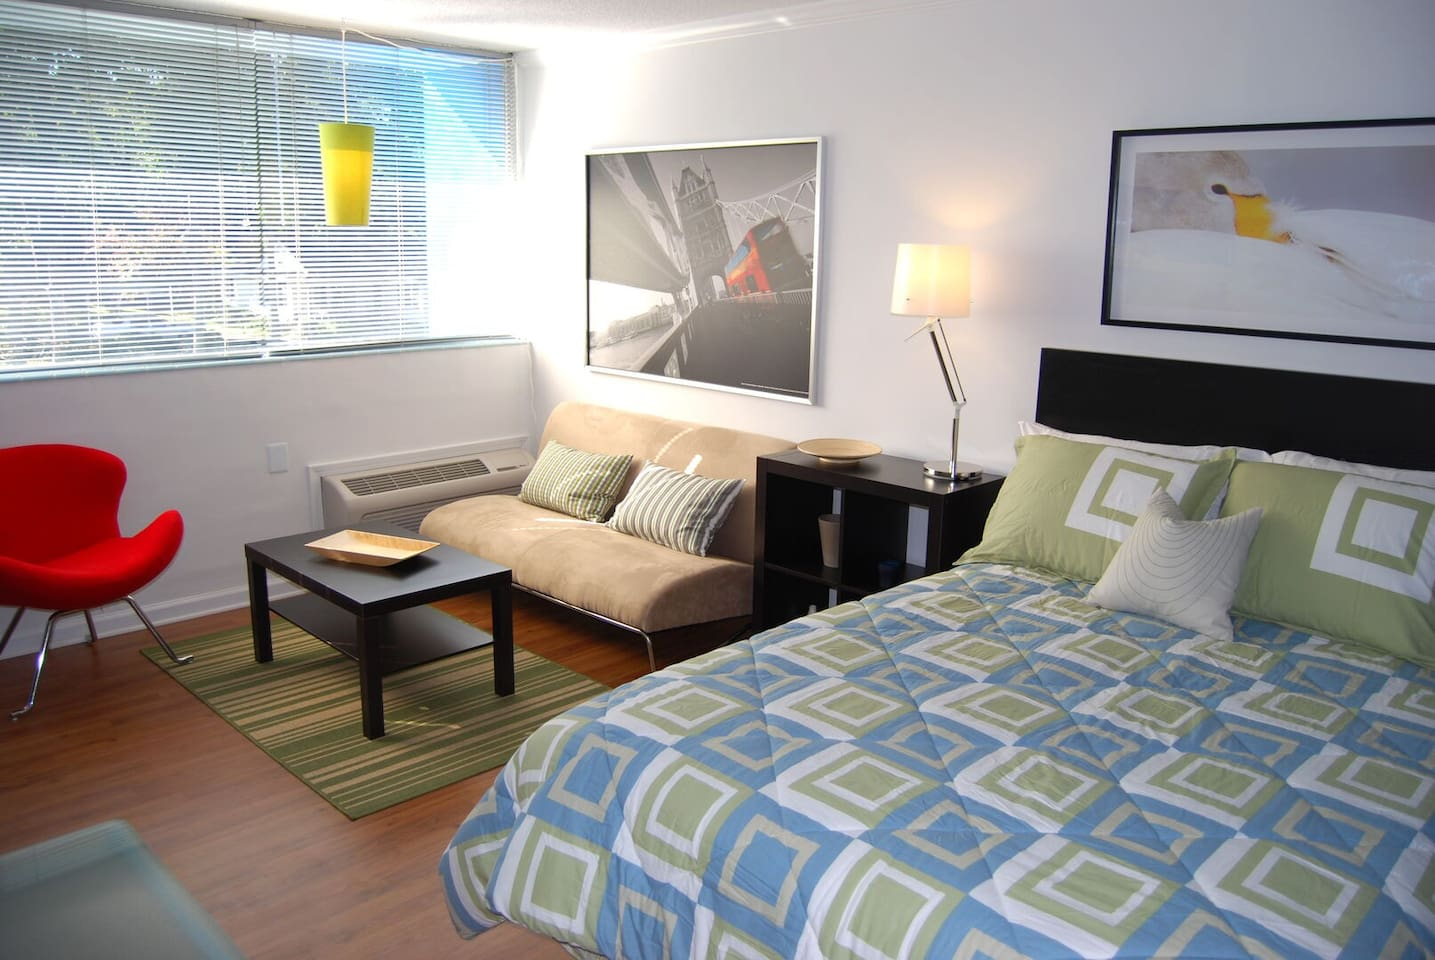 Studios On 25th - Standard Studio - Furnished Apartment